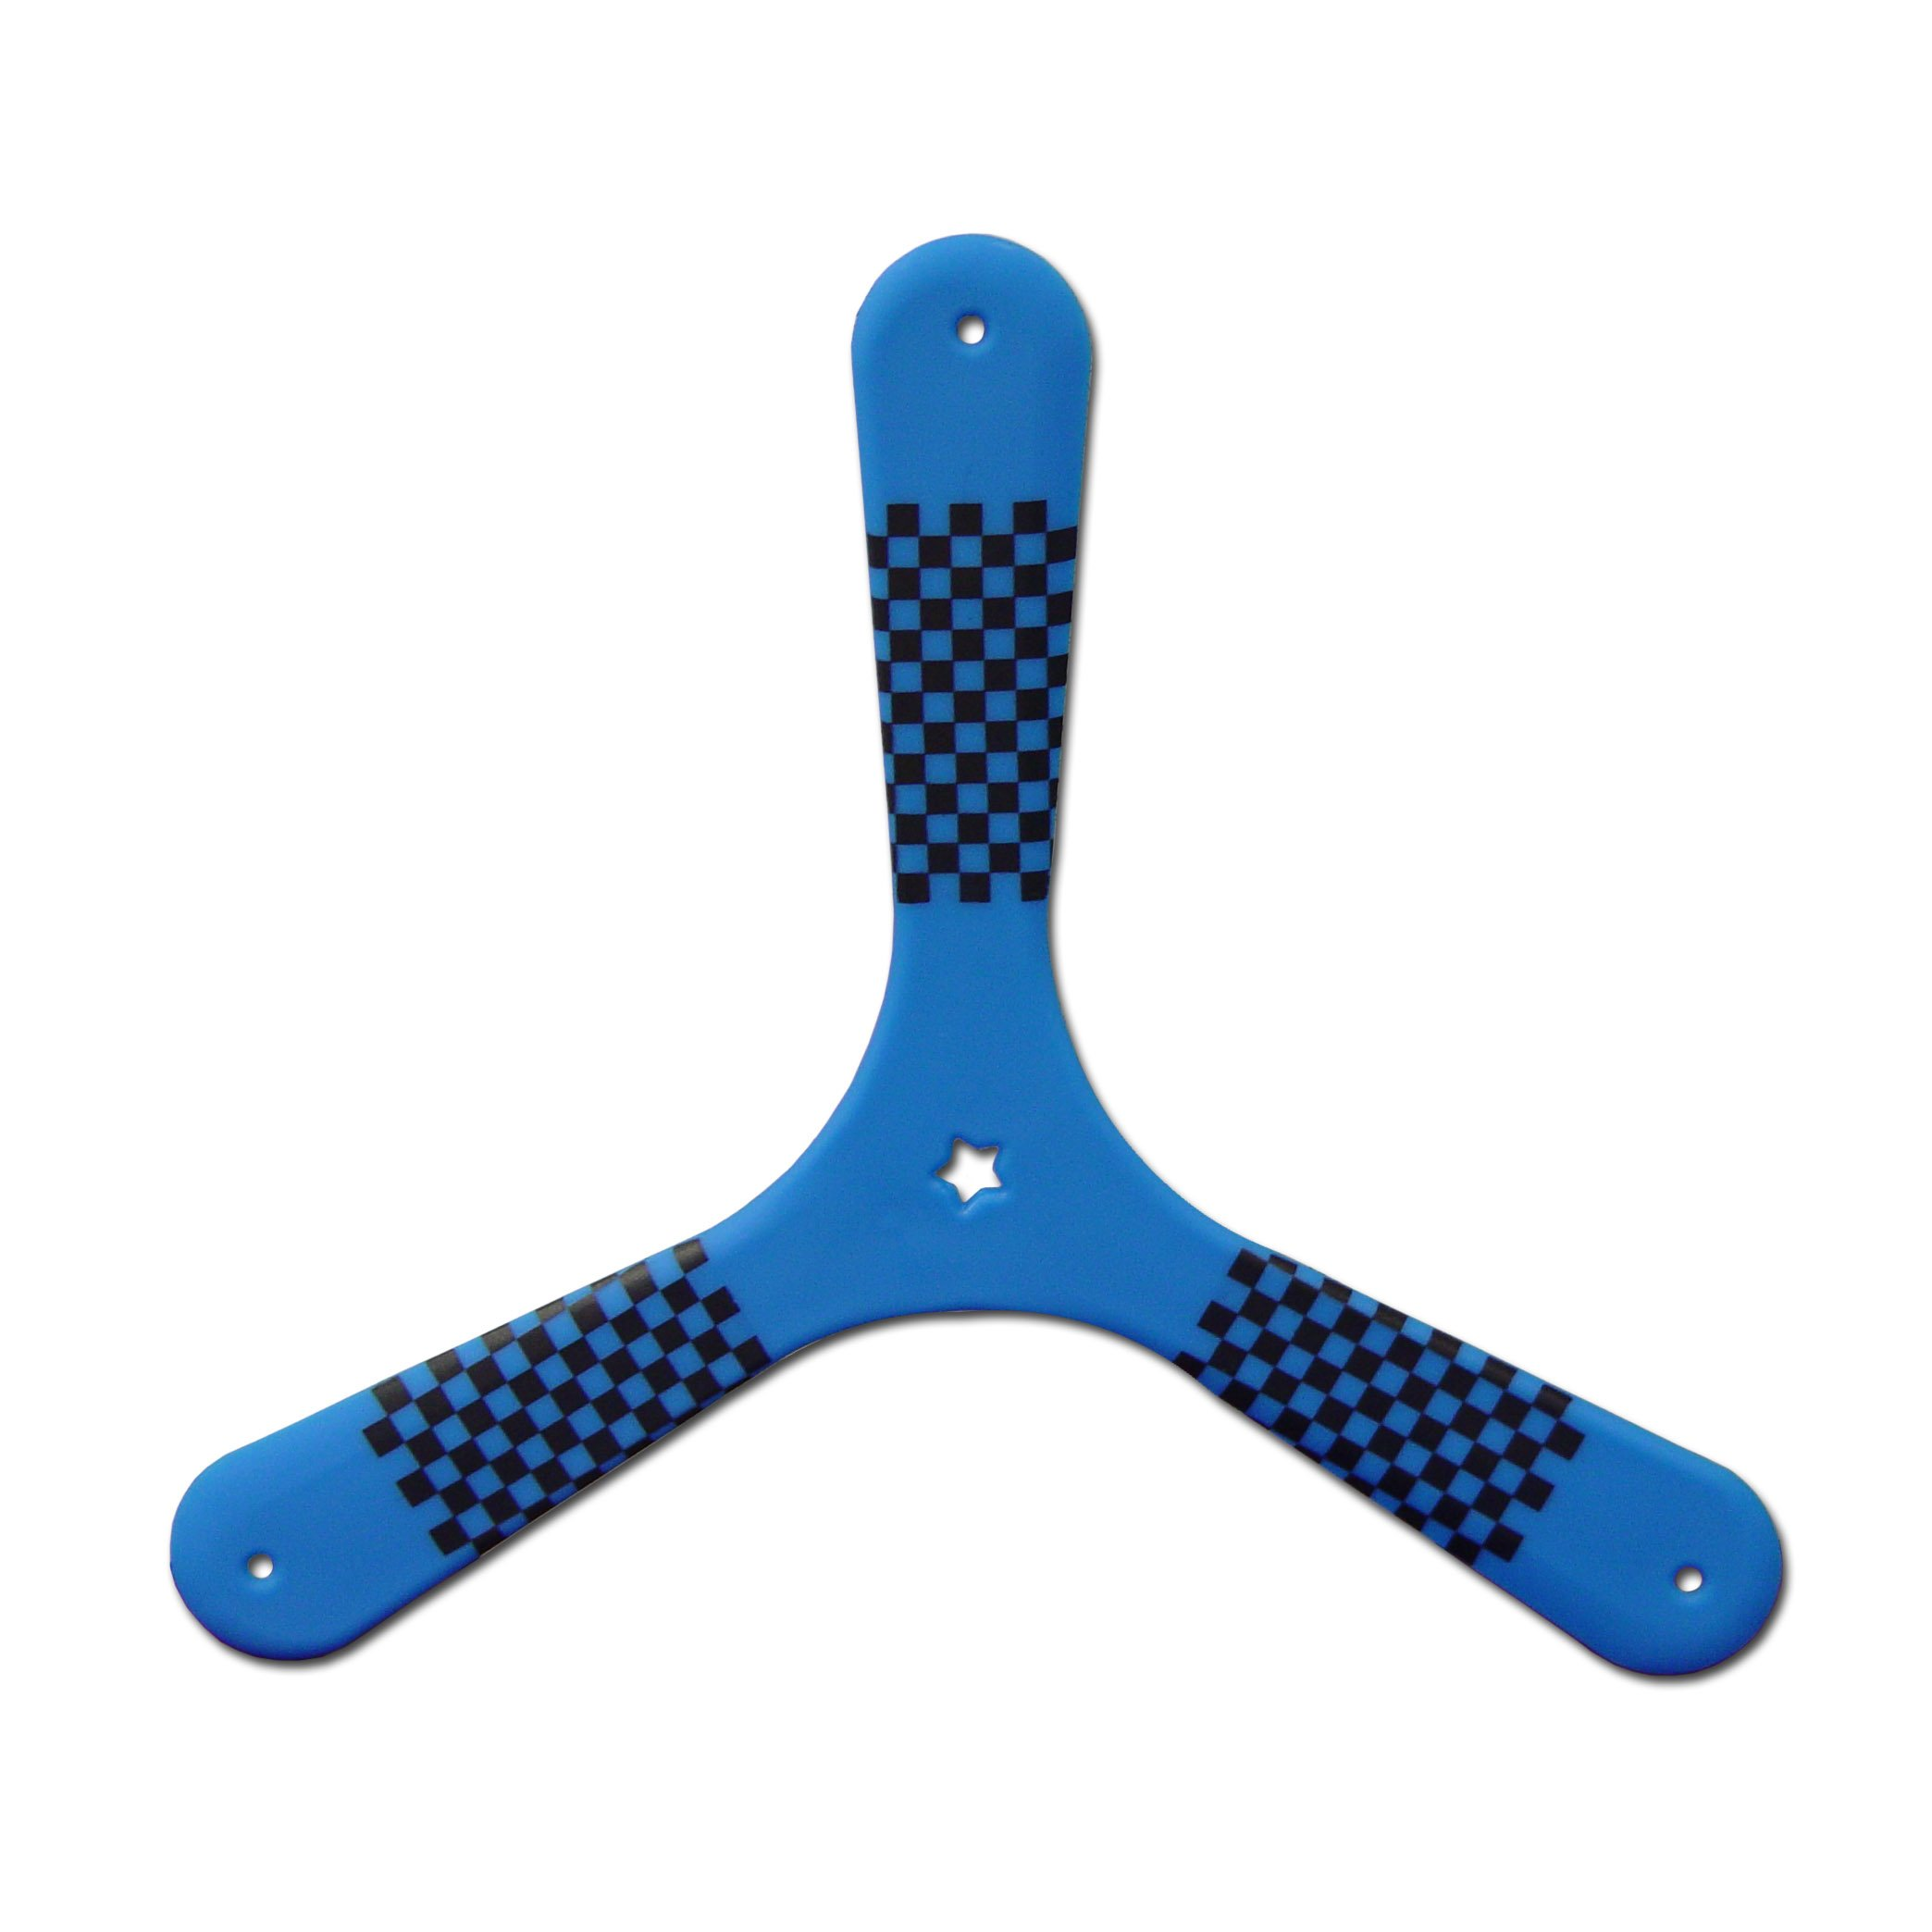 Blue Speed Racer Fast Catch Boomerang - Returning Boomerangs for Boomerang Athletes. Beginning Boomerangs for Young Throwers. by Colorado Boomerangs